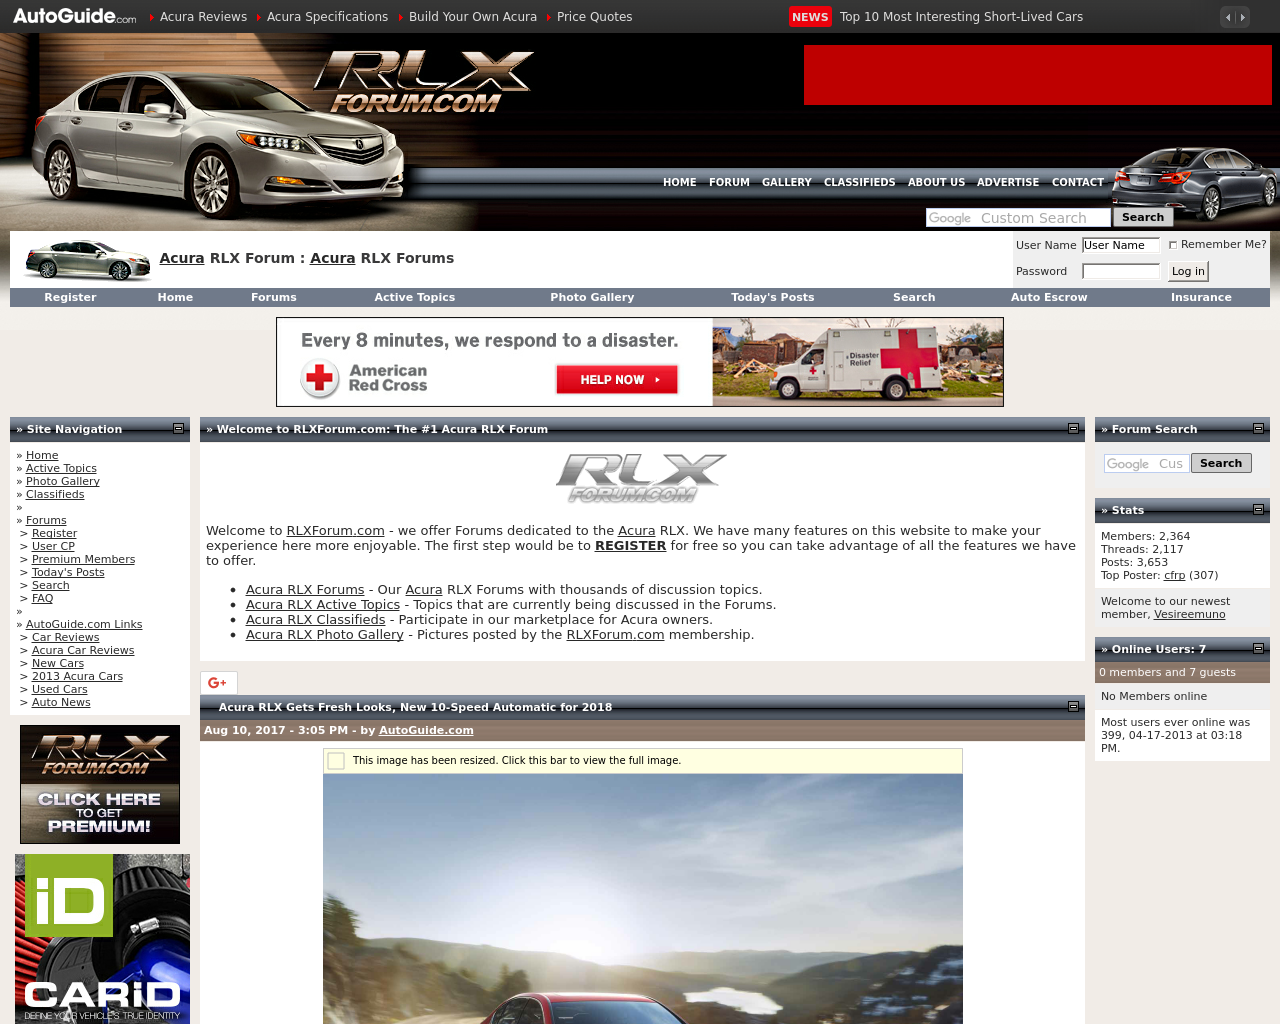 Acura-RLX-Advertising-Reviews-Pricing